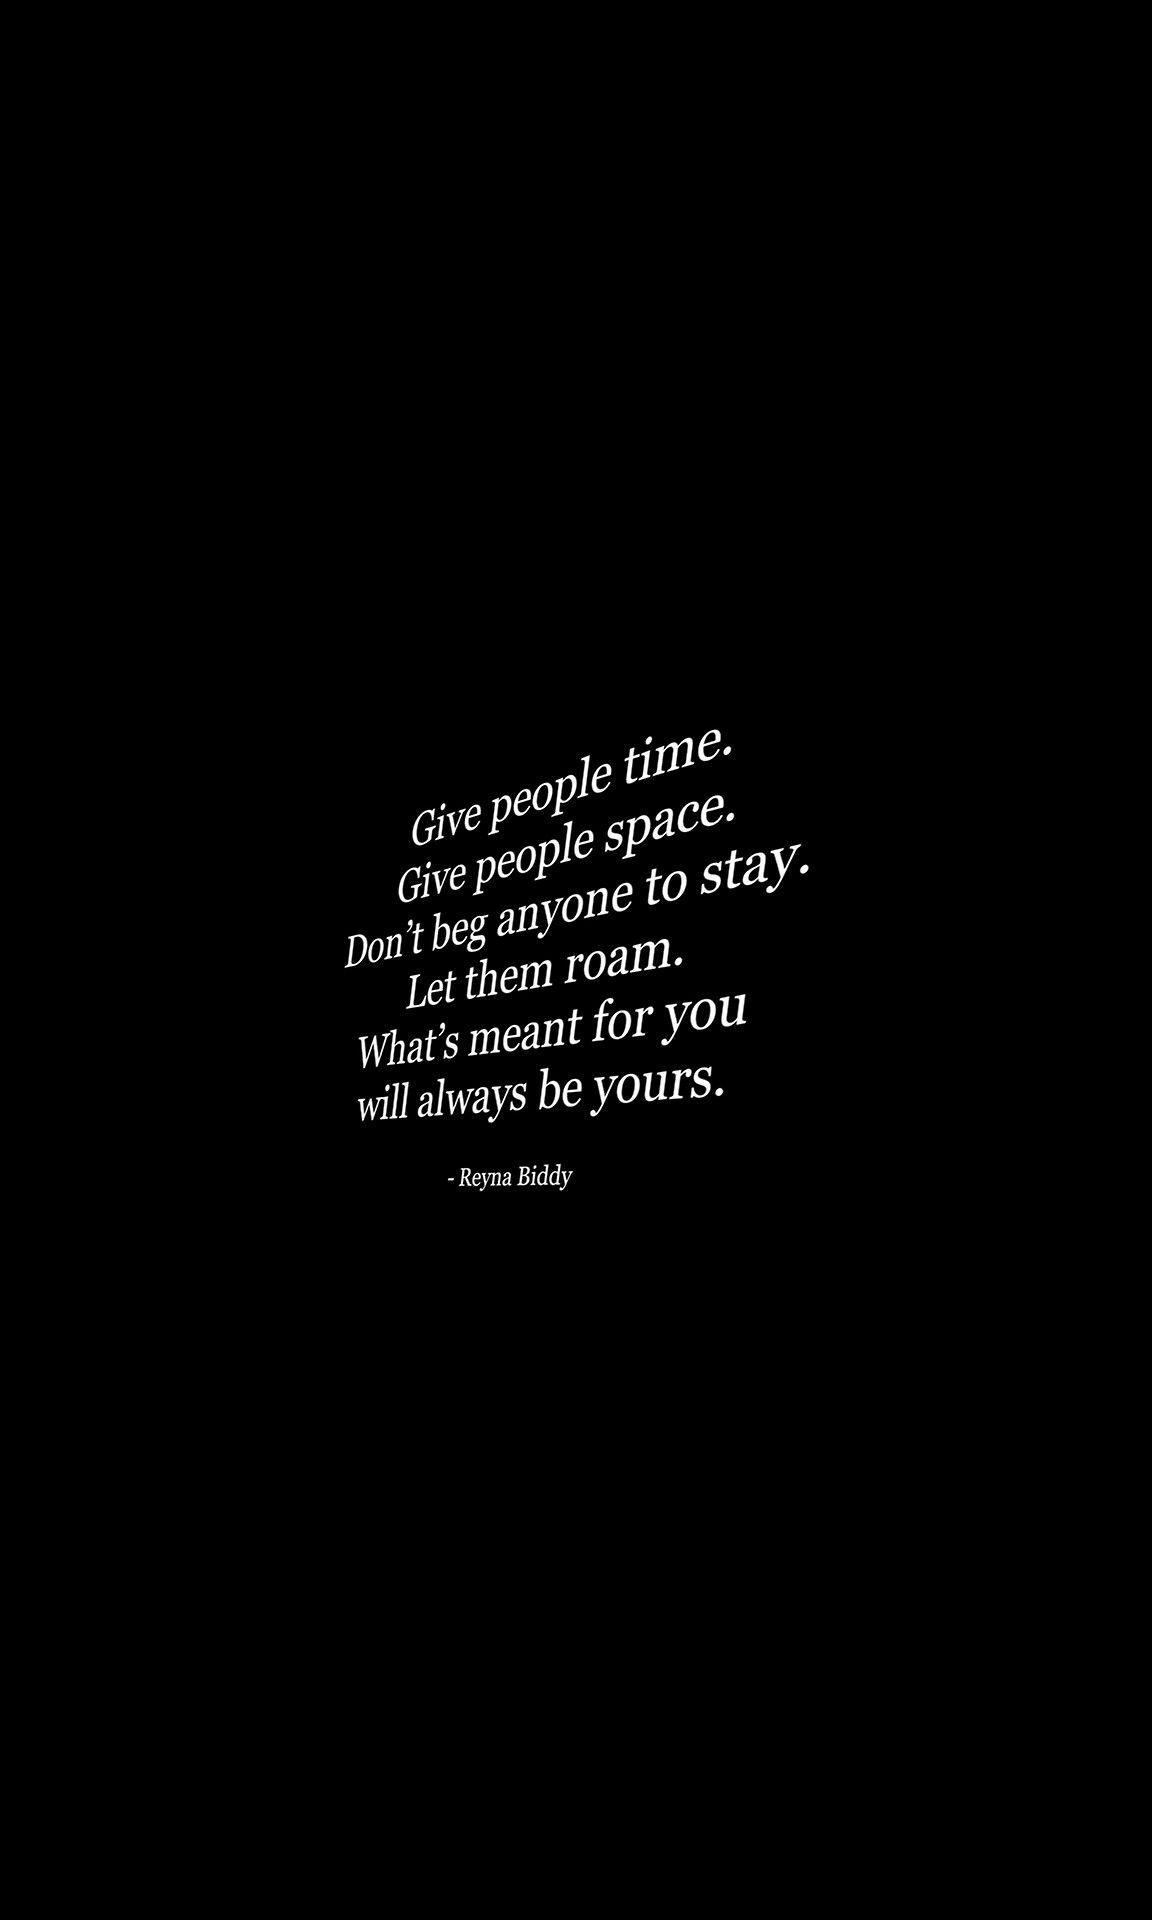 reyna biddy | good life quotes, note to self quotes, life quotes